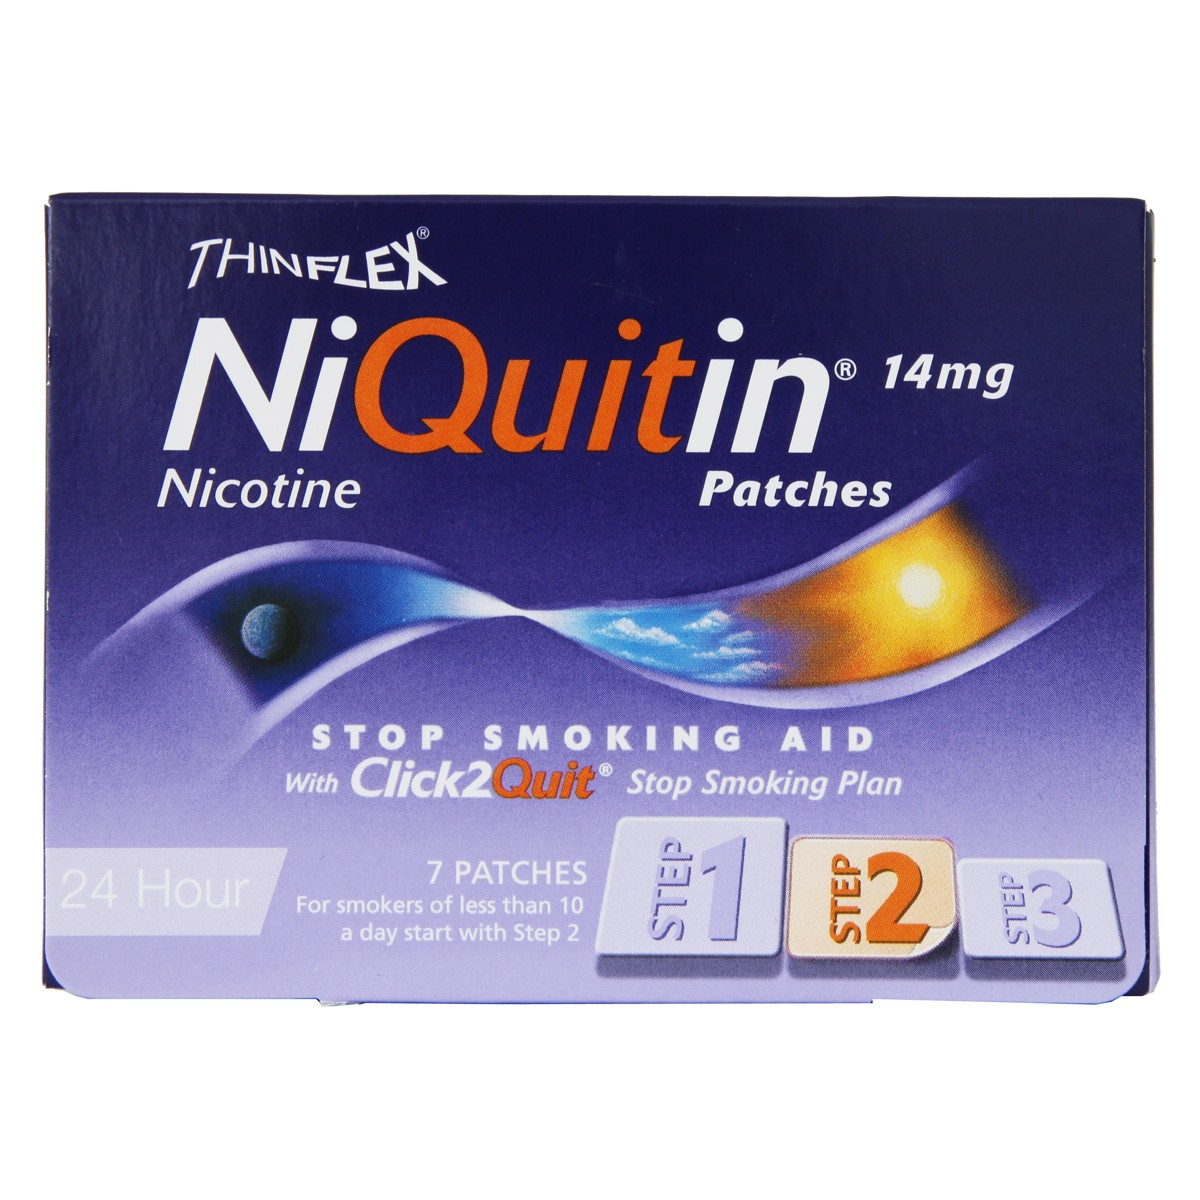 Niquitin Patches 14mg Original - Step 2 - 7 patches